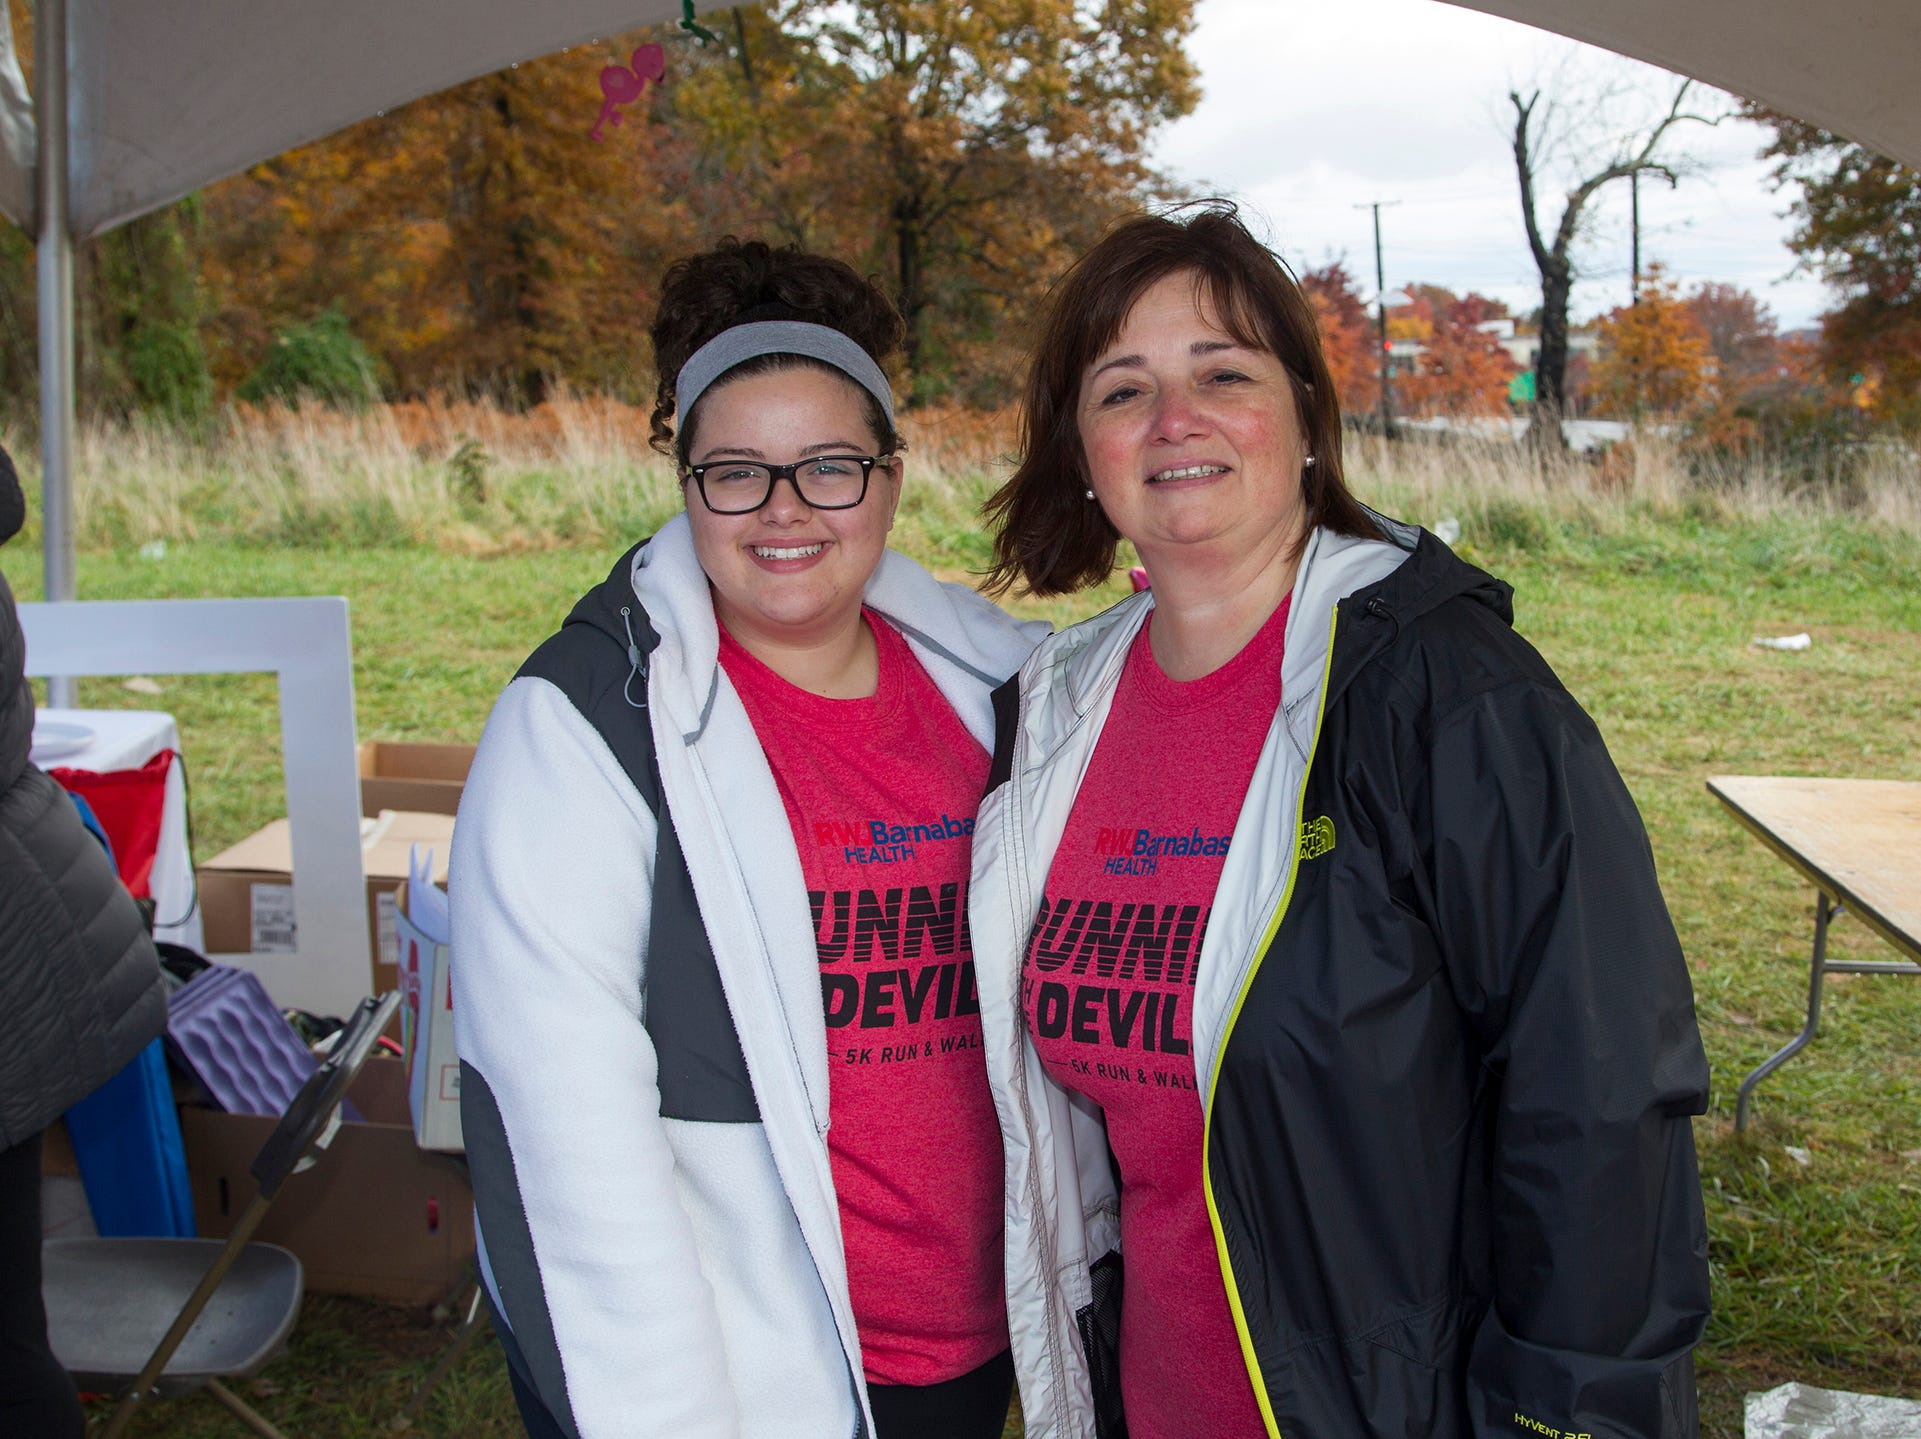 Jenna and Lisa. RWJBarnabas Health Running with the Devils 5K Run and Family Fun Walk at South Mountain Recreation in West Orange. 10/03/2018